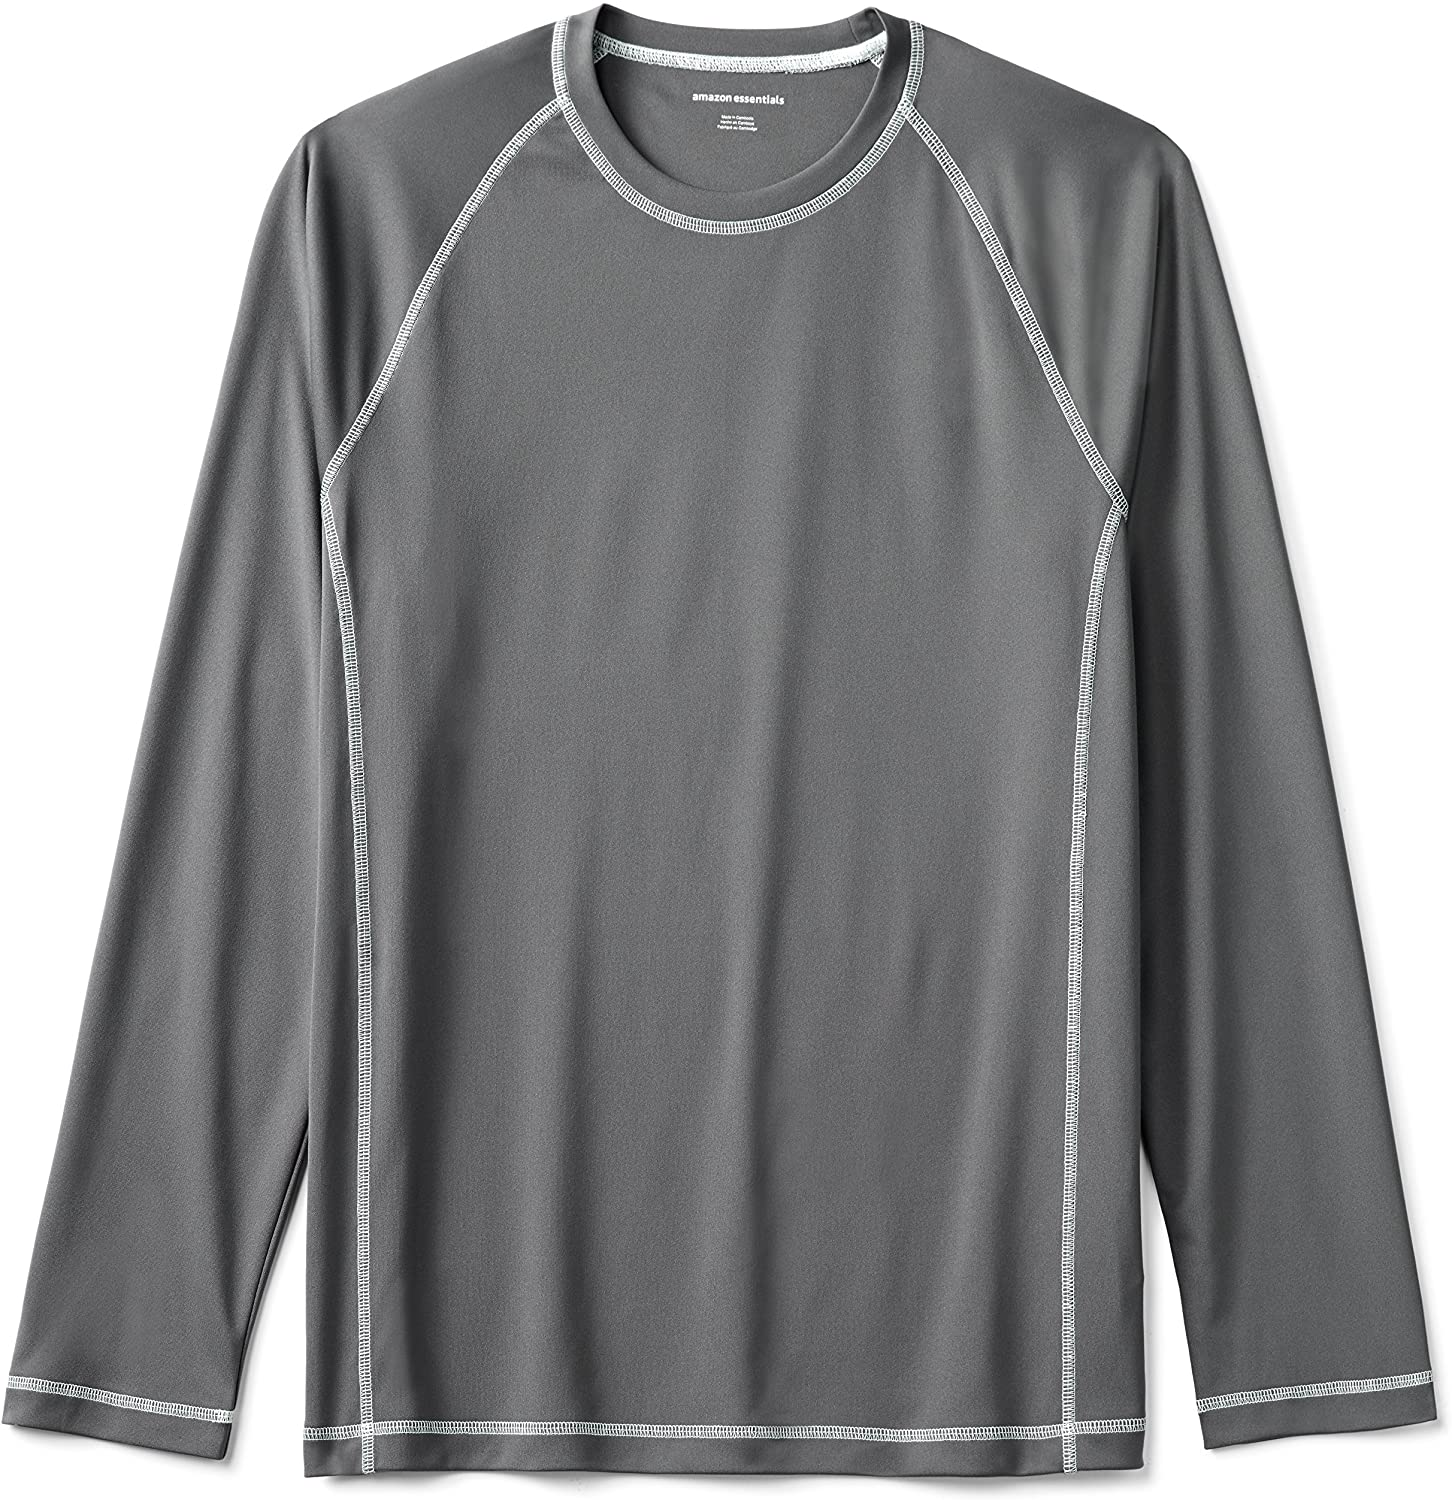 DHgate Essentials Men's Long-Sleeve Loose-Fit Quick-Dry UPF 50 Swim Tee